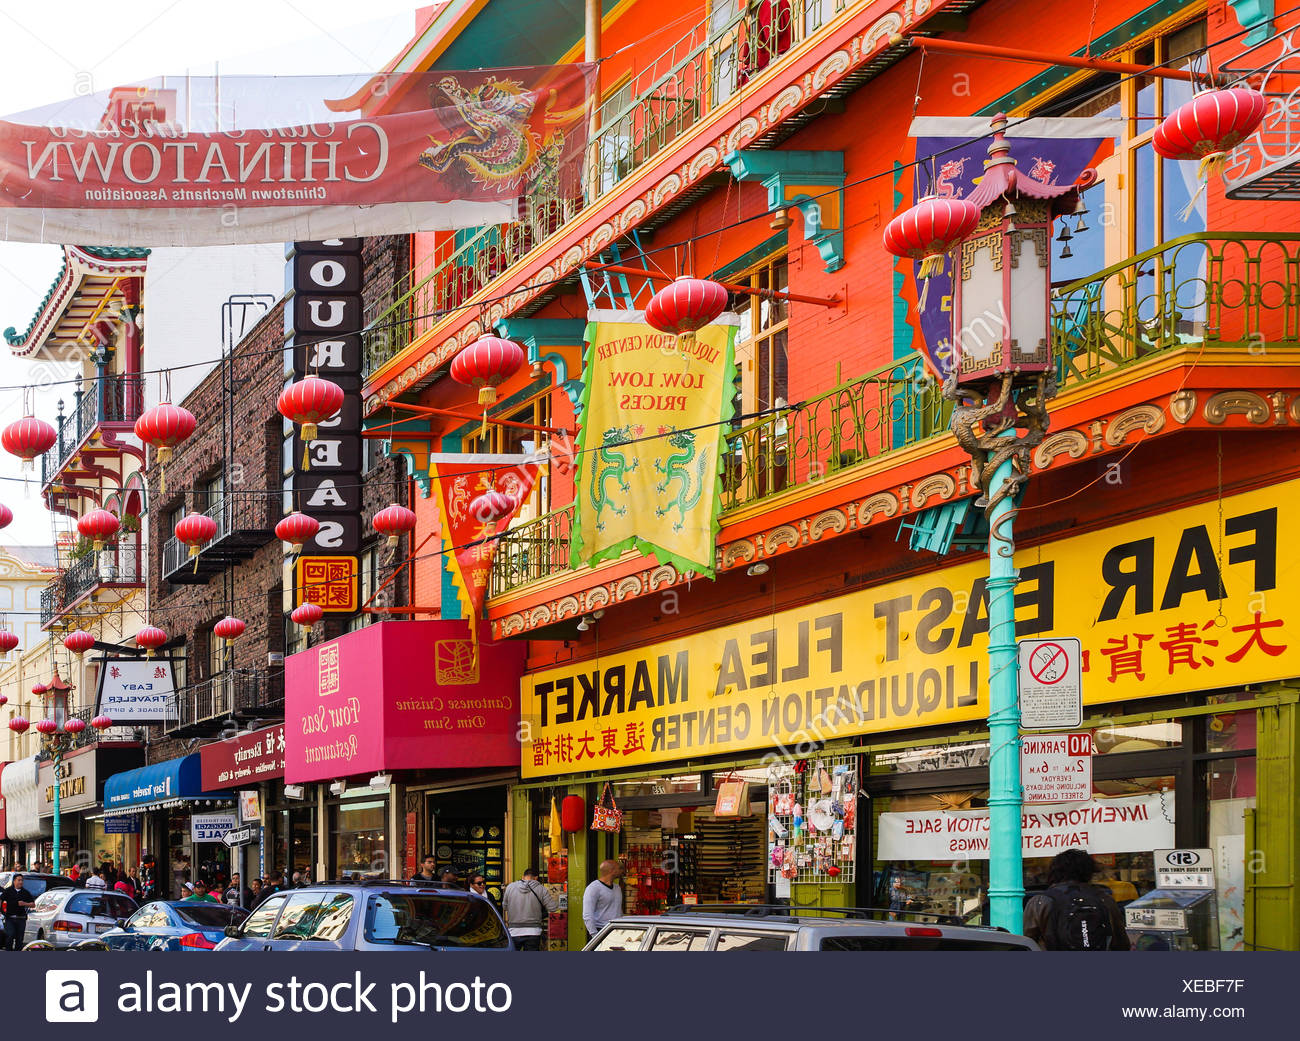 Chinatown in San Francisco - Stock Image